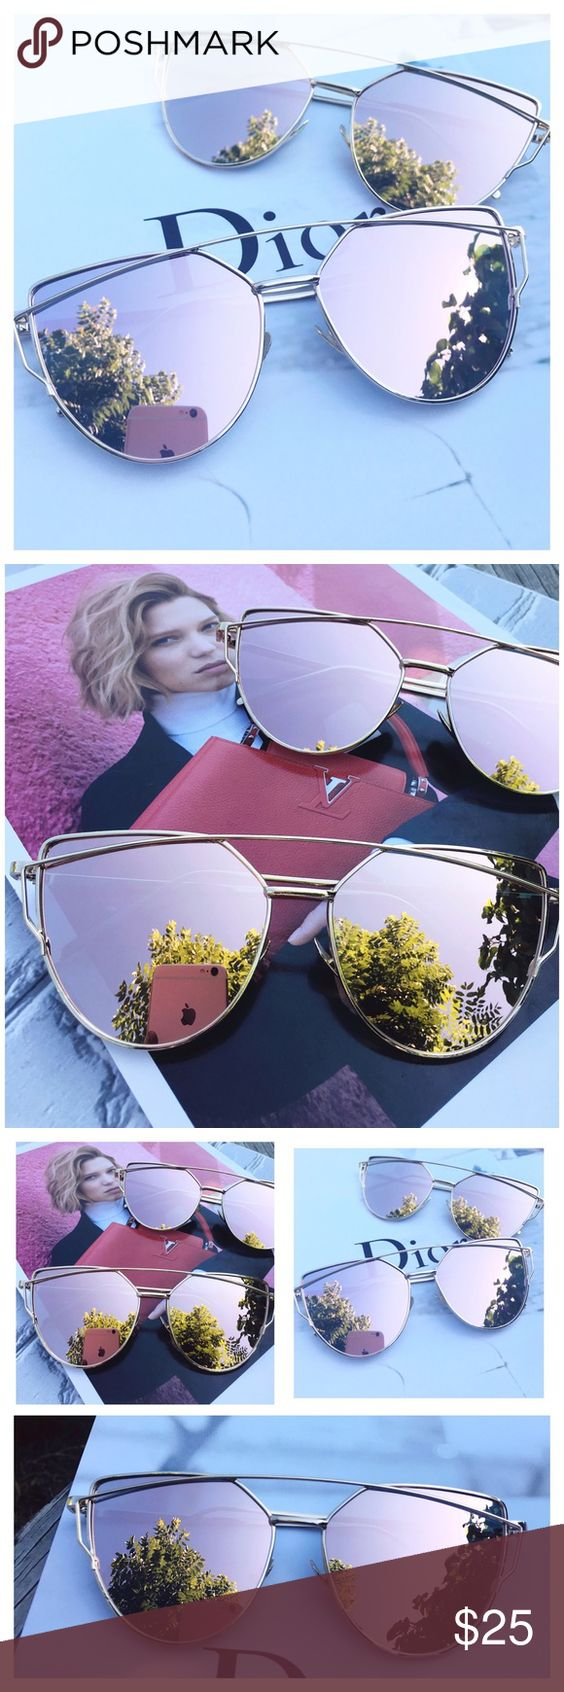 Rose Gold Mirrored Sunglasses, Reflective Sunglass Restocked! Cat Eye Aviator Sunglasses. This listing is for a pair of Cat Eye aviator sunshades. Rose Gold Mirrored Sunglasses. Retro. Sunglasses. Wire sunglasses. Trending sunglasses. UV protection. Top quality! Brand new! Bundle and save!                                              ✨1 for $20, 2 for $30, 3 for $40✨ Accessories Sunglasses